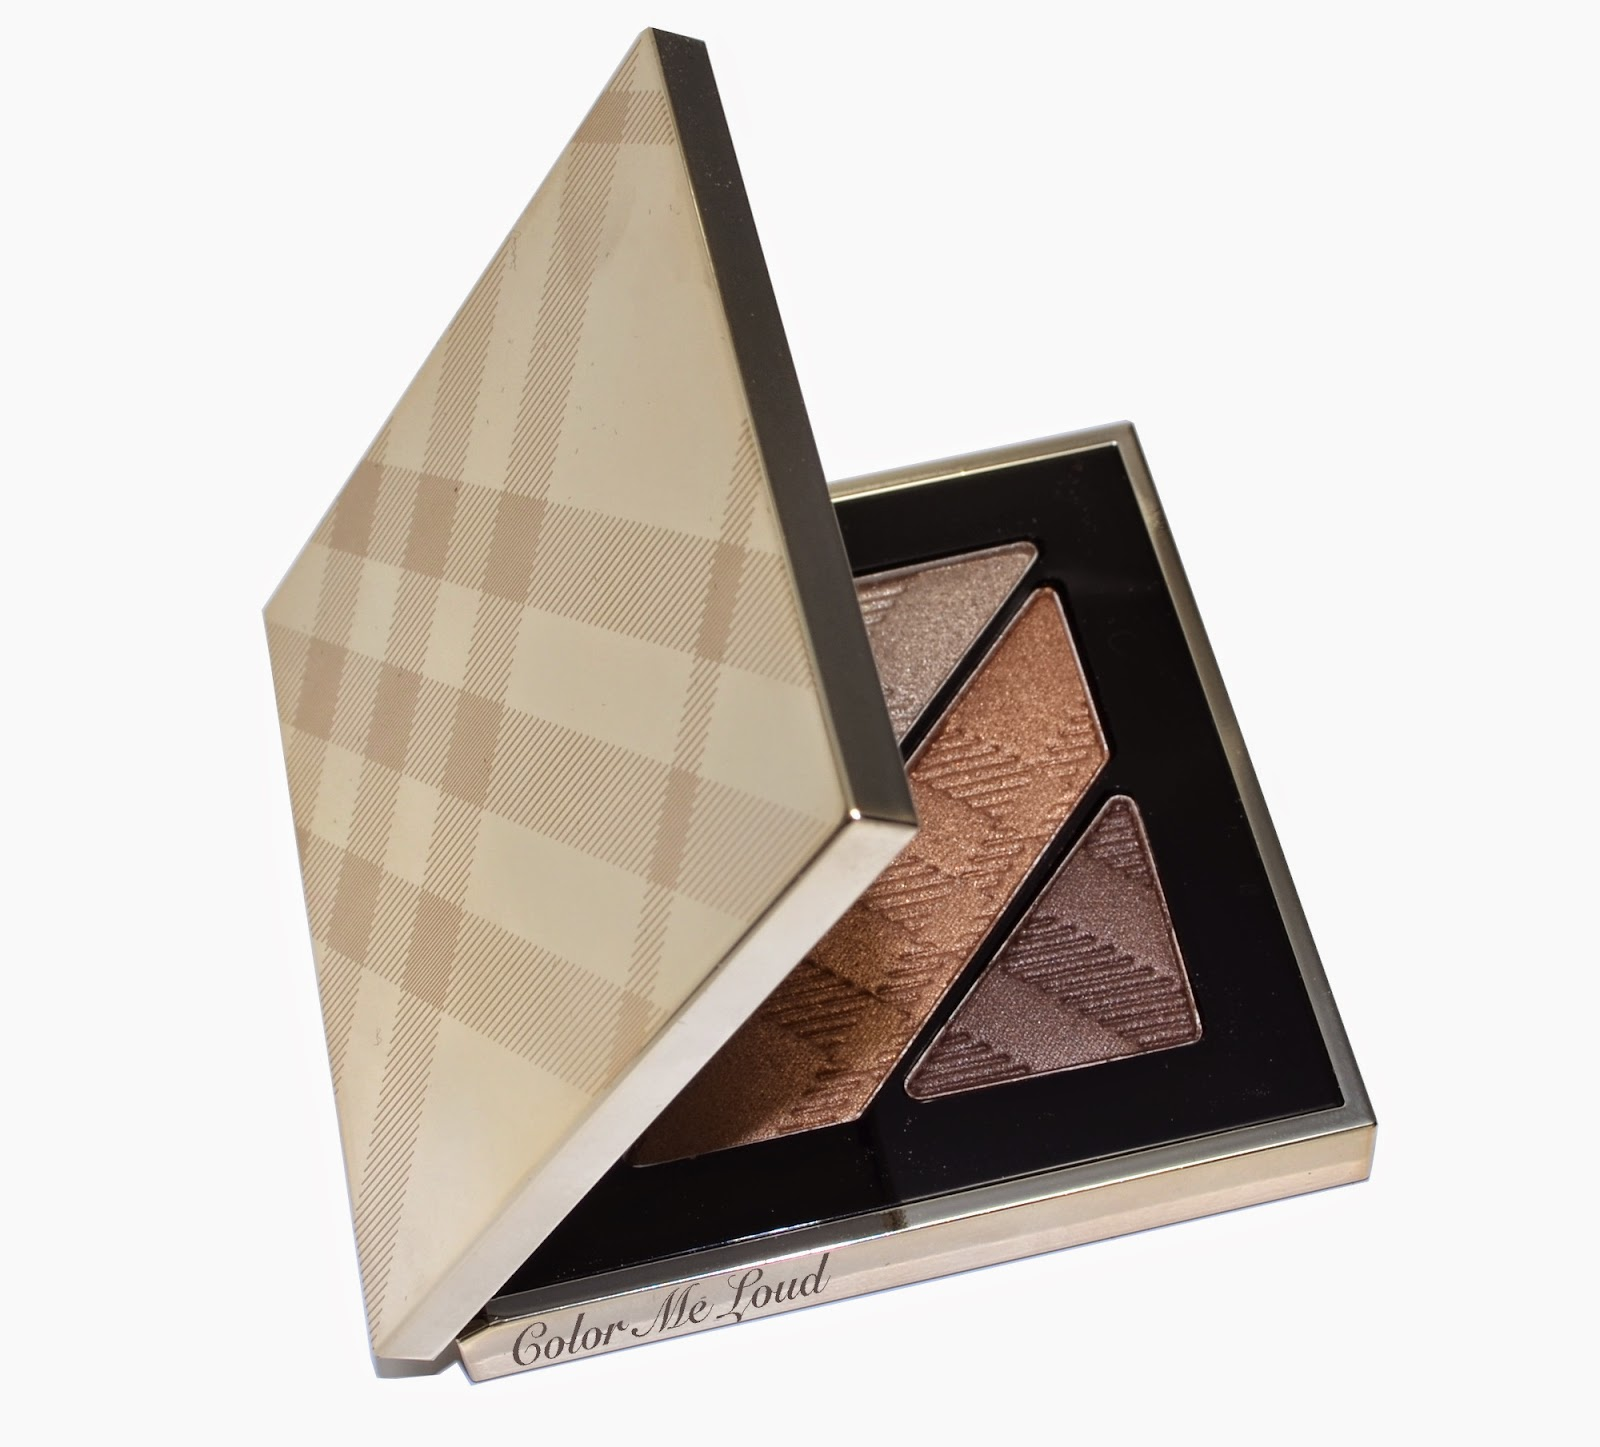 Burberry Winter Glow Collection of Holiday 2014, Complete